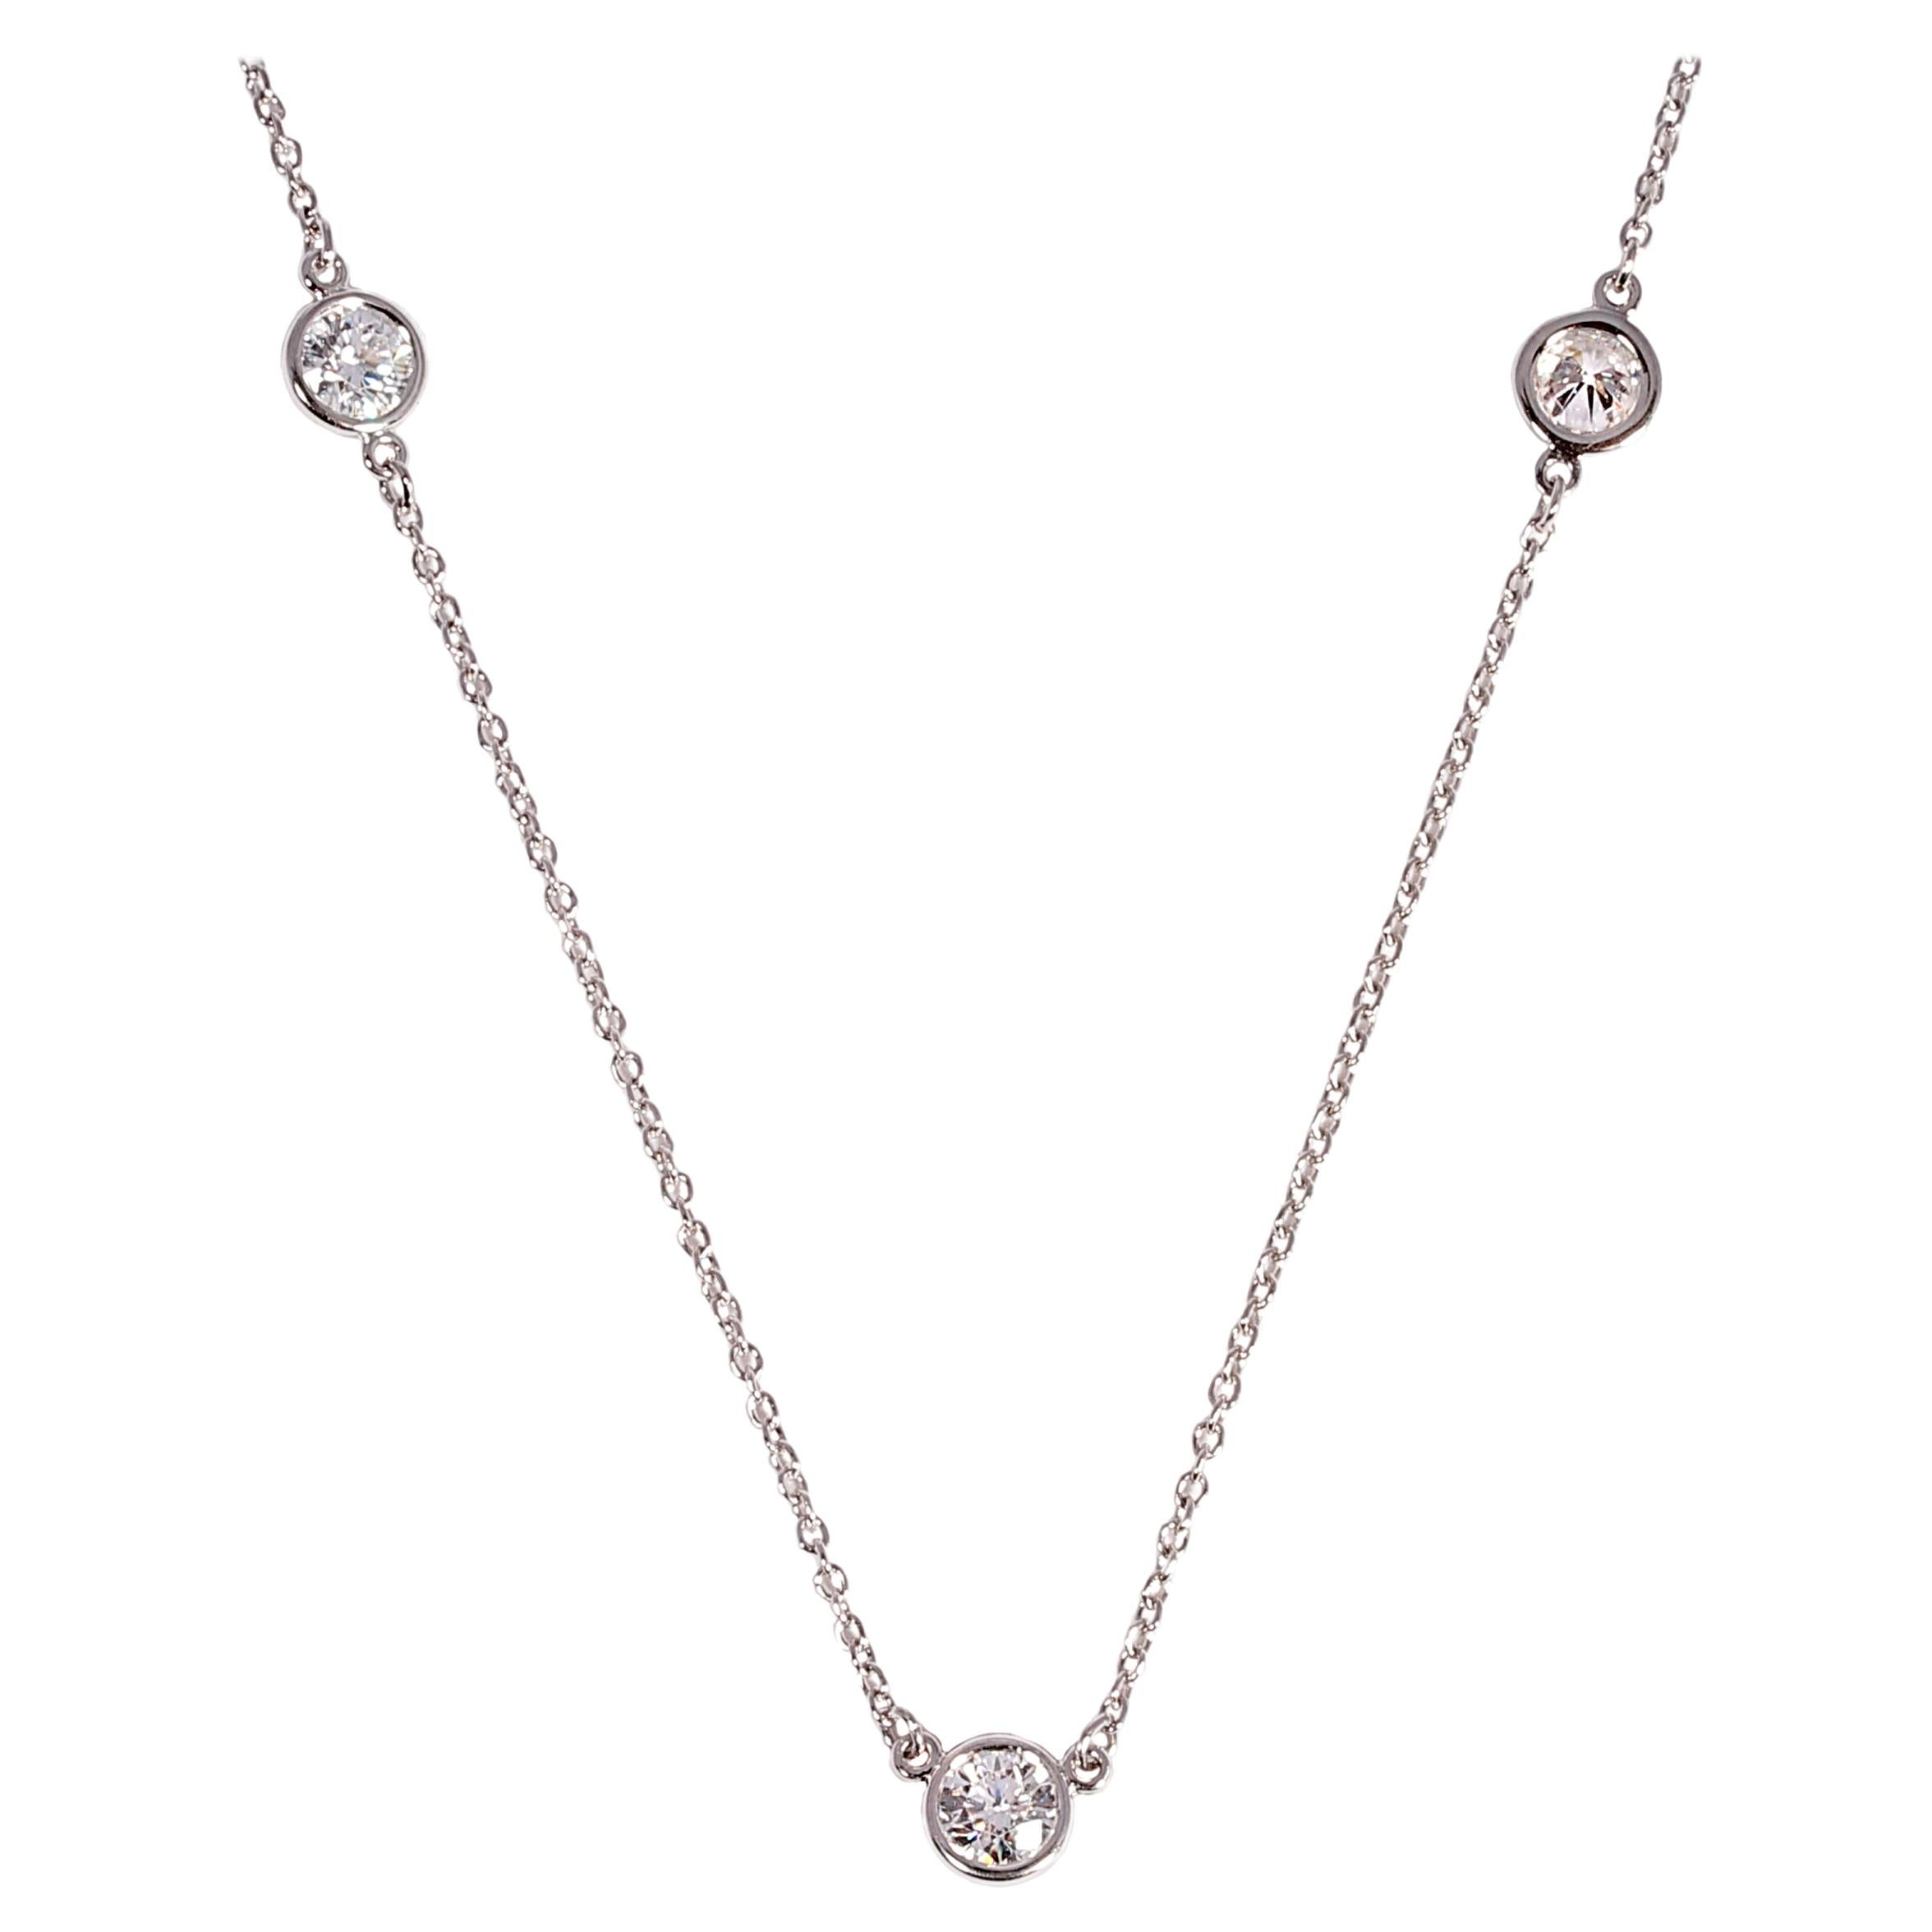 Diamonds by the Yard Necklace by Elsa Peretti for Tiffany & Co.